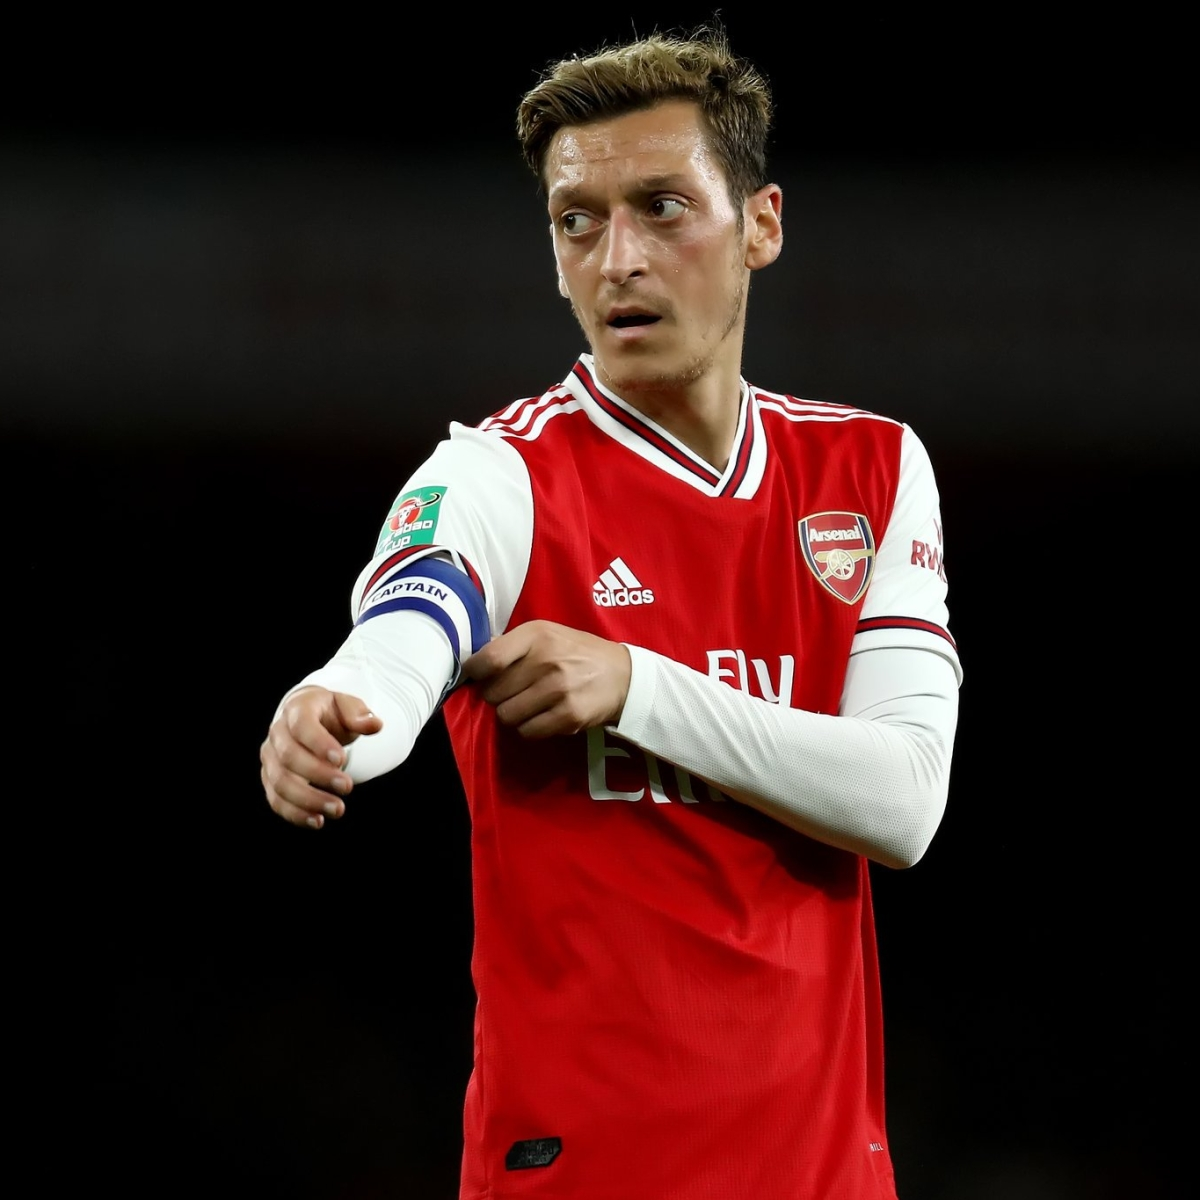 'Shame on you': Arsenal's Mesut Ozil disagrees to 12.5% pay cut, draws criticism